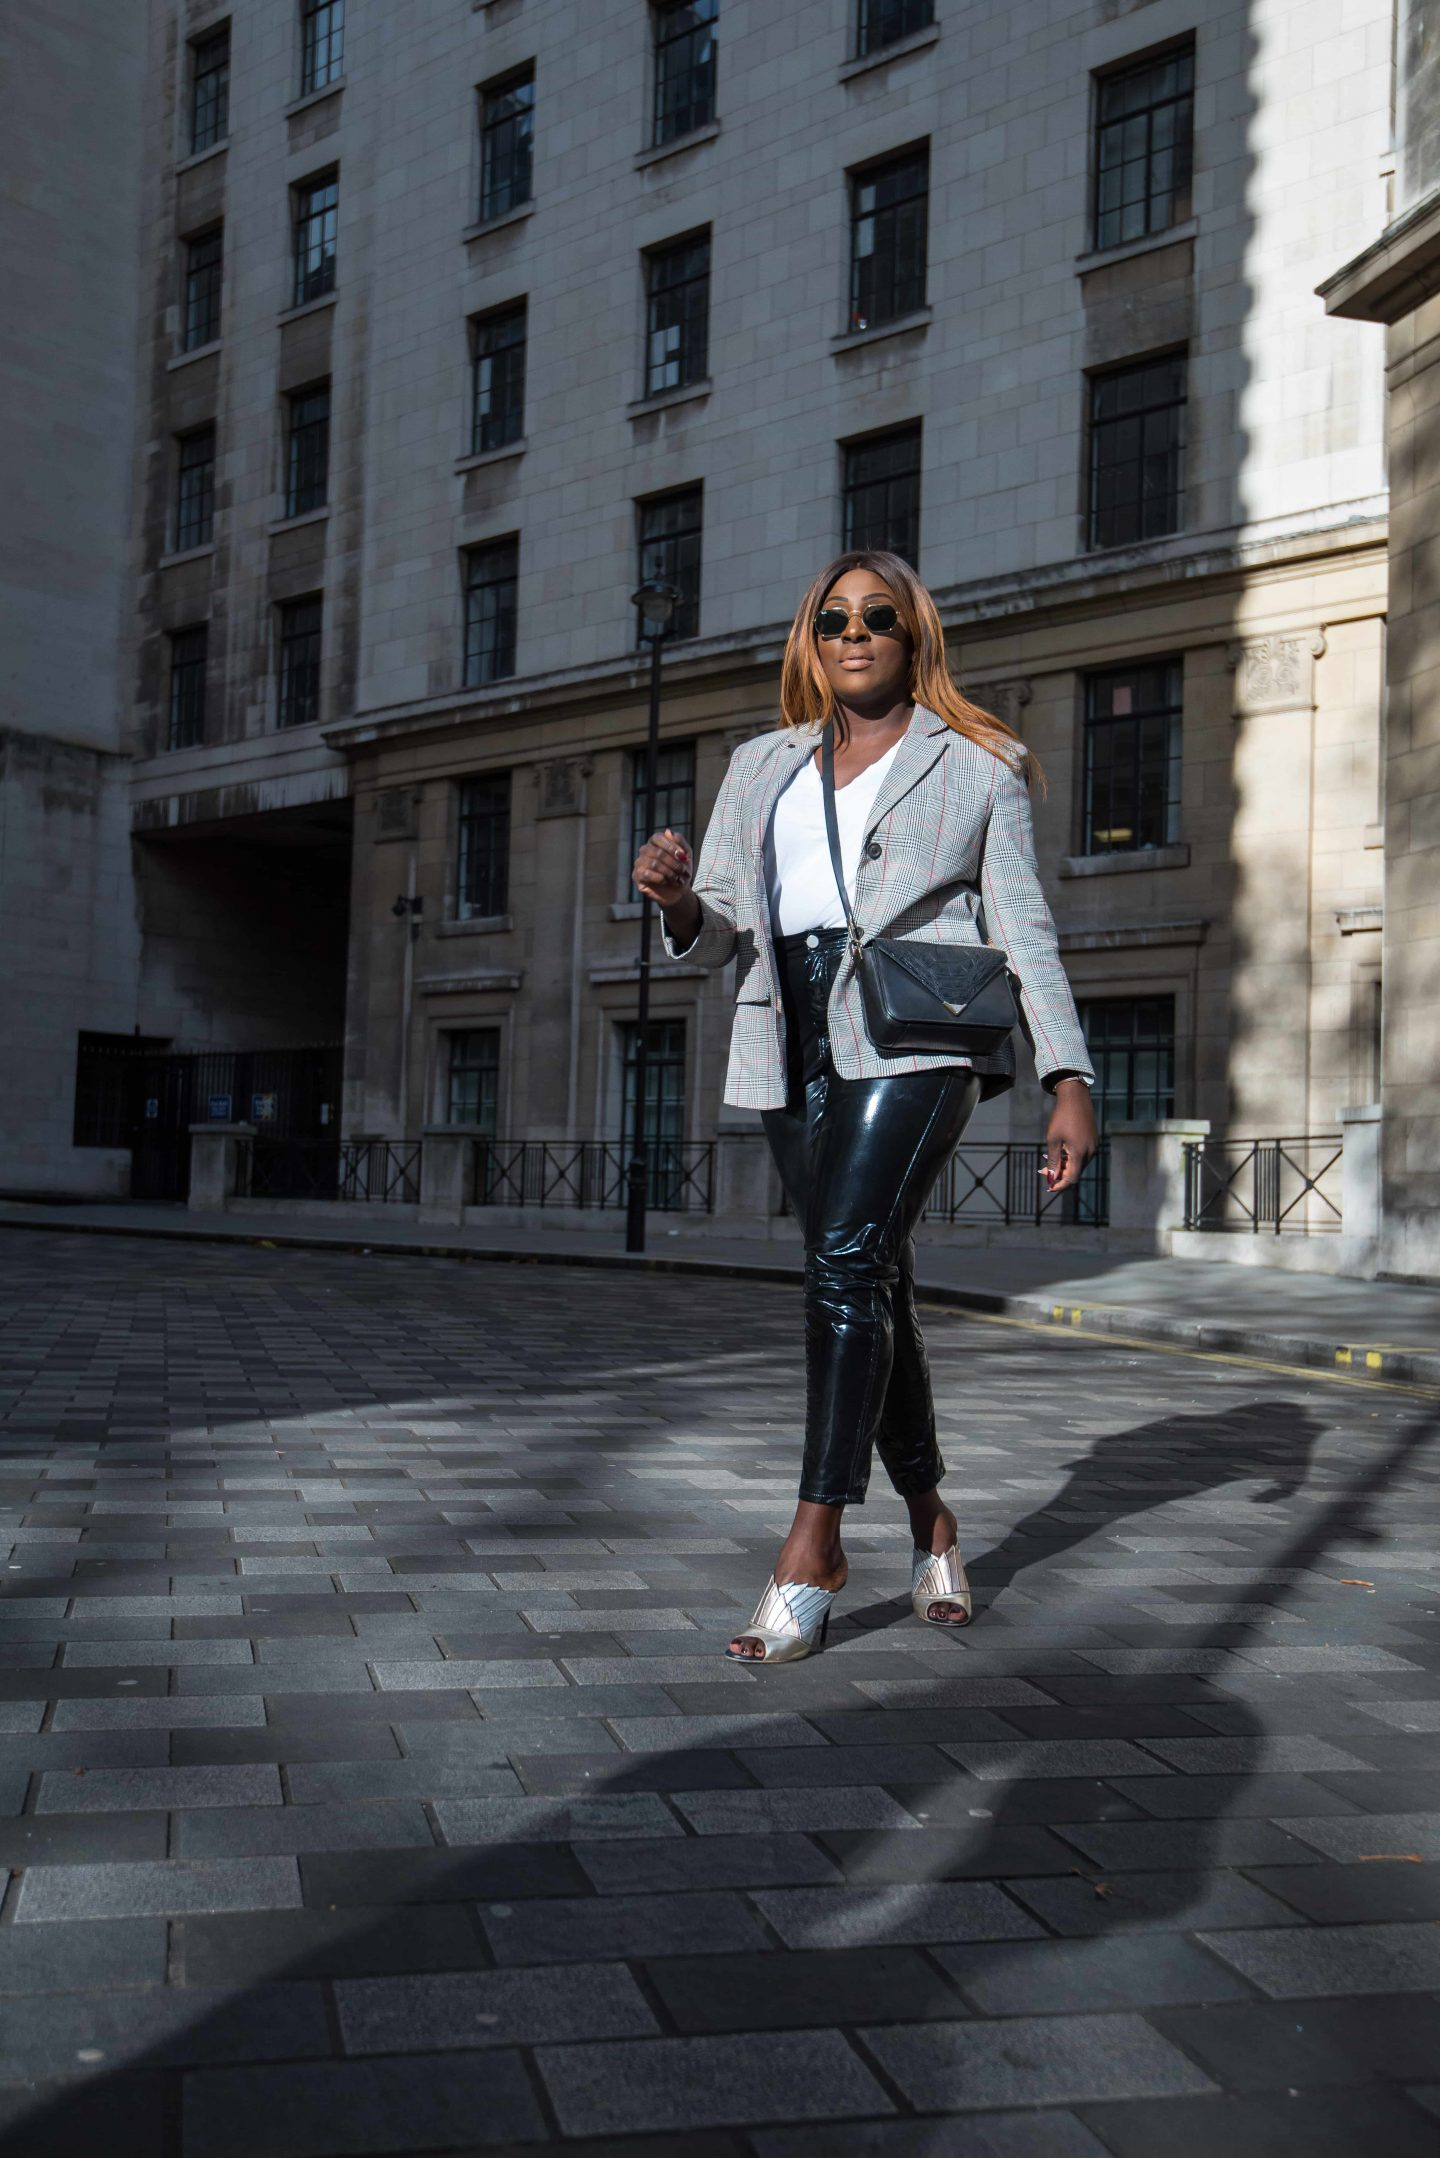 Autumn Workwear & The Vinyl Affect 3 - Zara check blazer - Alexander Wang Bag - vinyl trousers - malone soulier mules - Style and the Sass